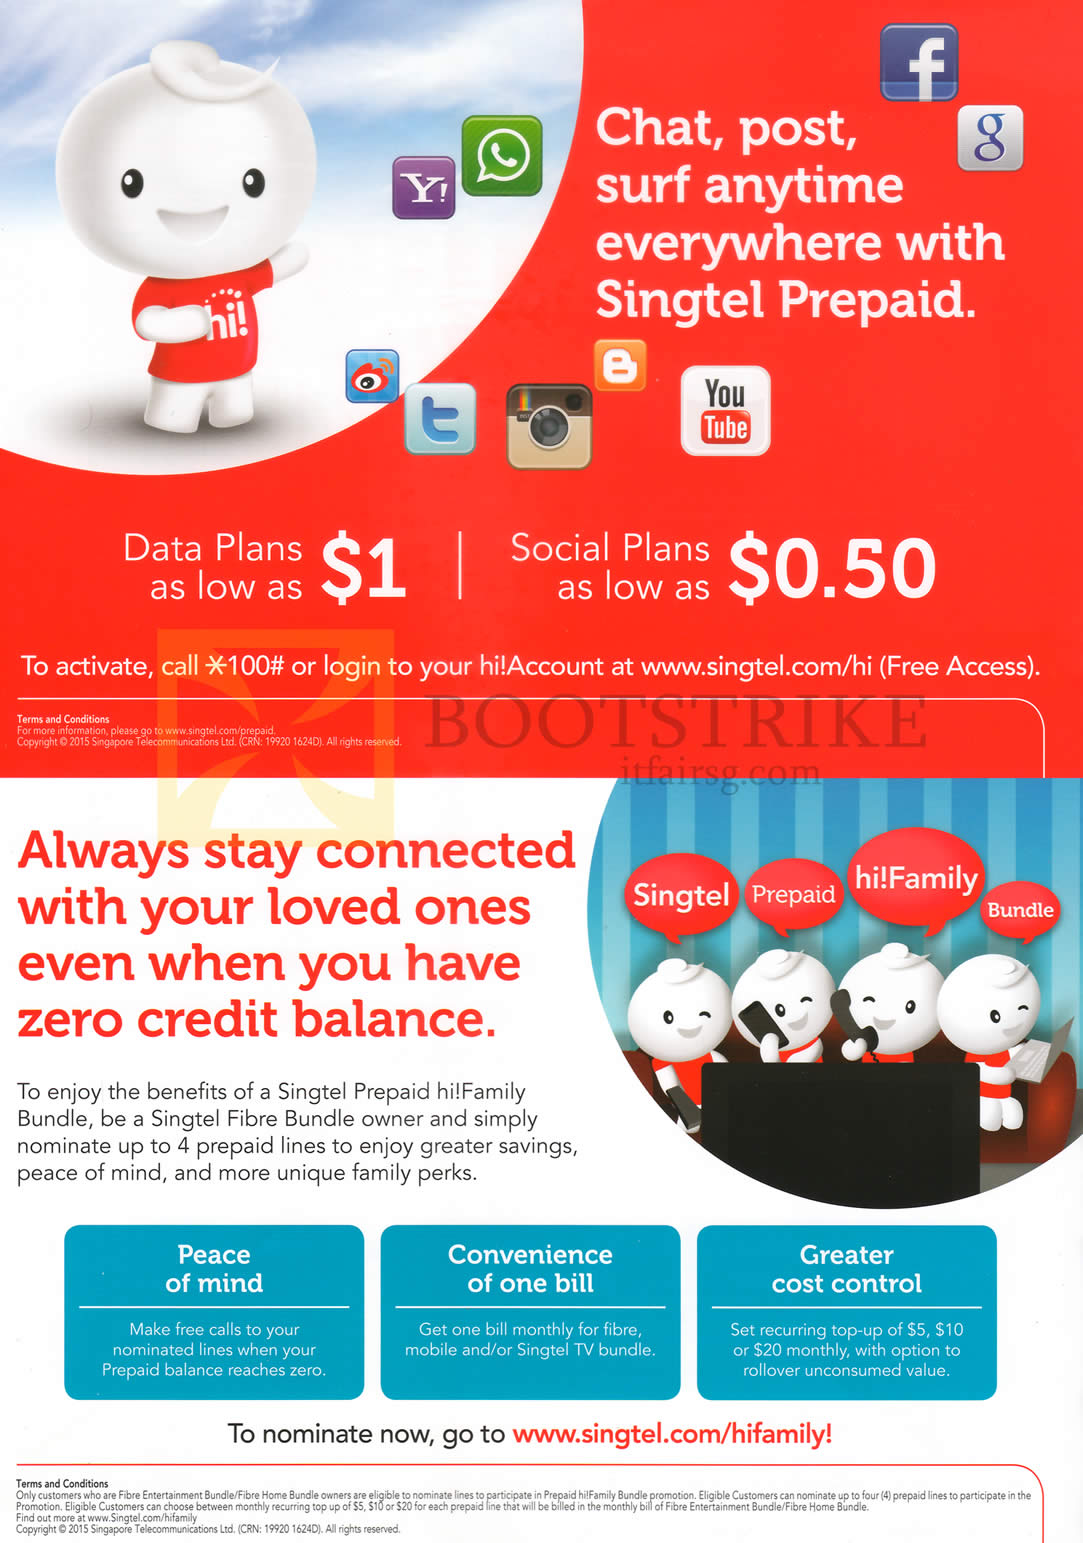 PC SHOW 2015 price list image brochure of Singtel Prepaid Data Plans From 1 Dollar, Social Plans From 50 Cents